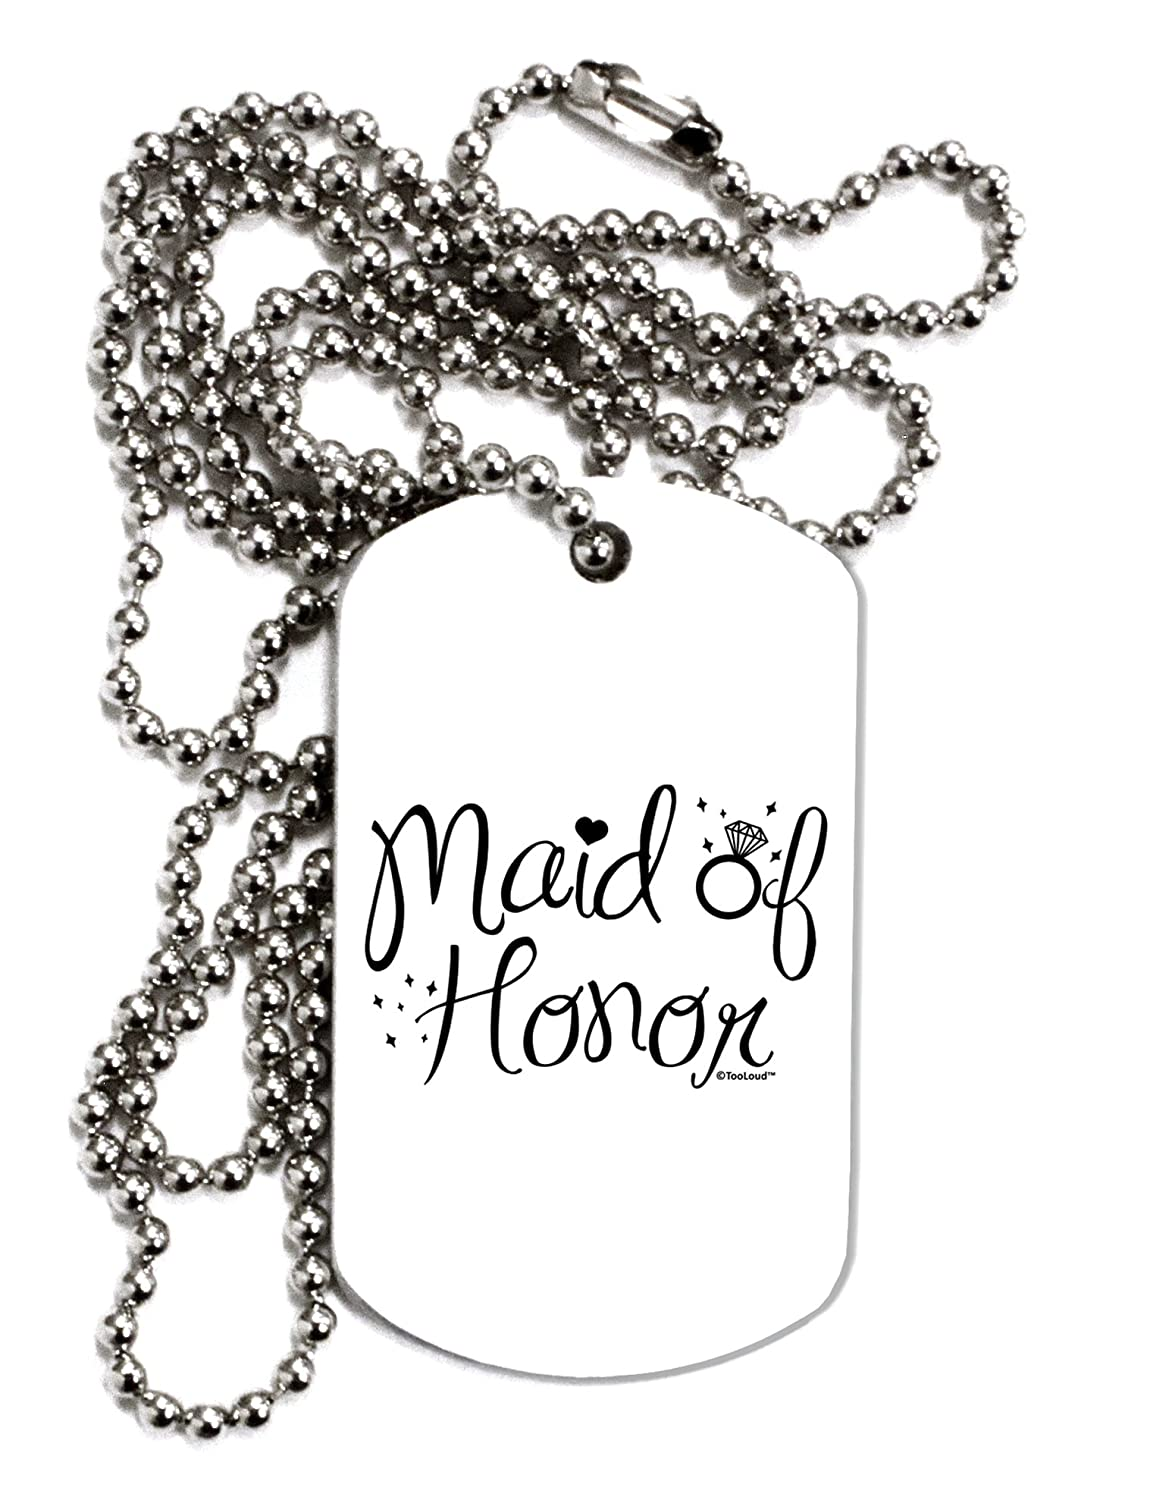 TOOLOUD Maid of Honor Diamond Ring Design Adult Dog Tag Chain Necklace